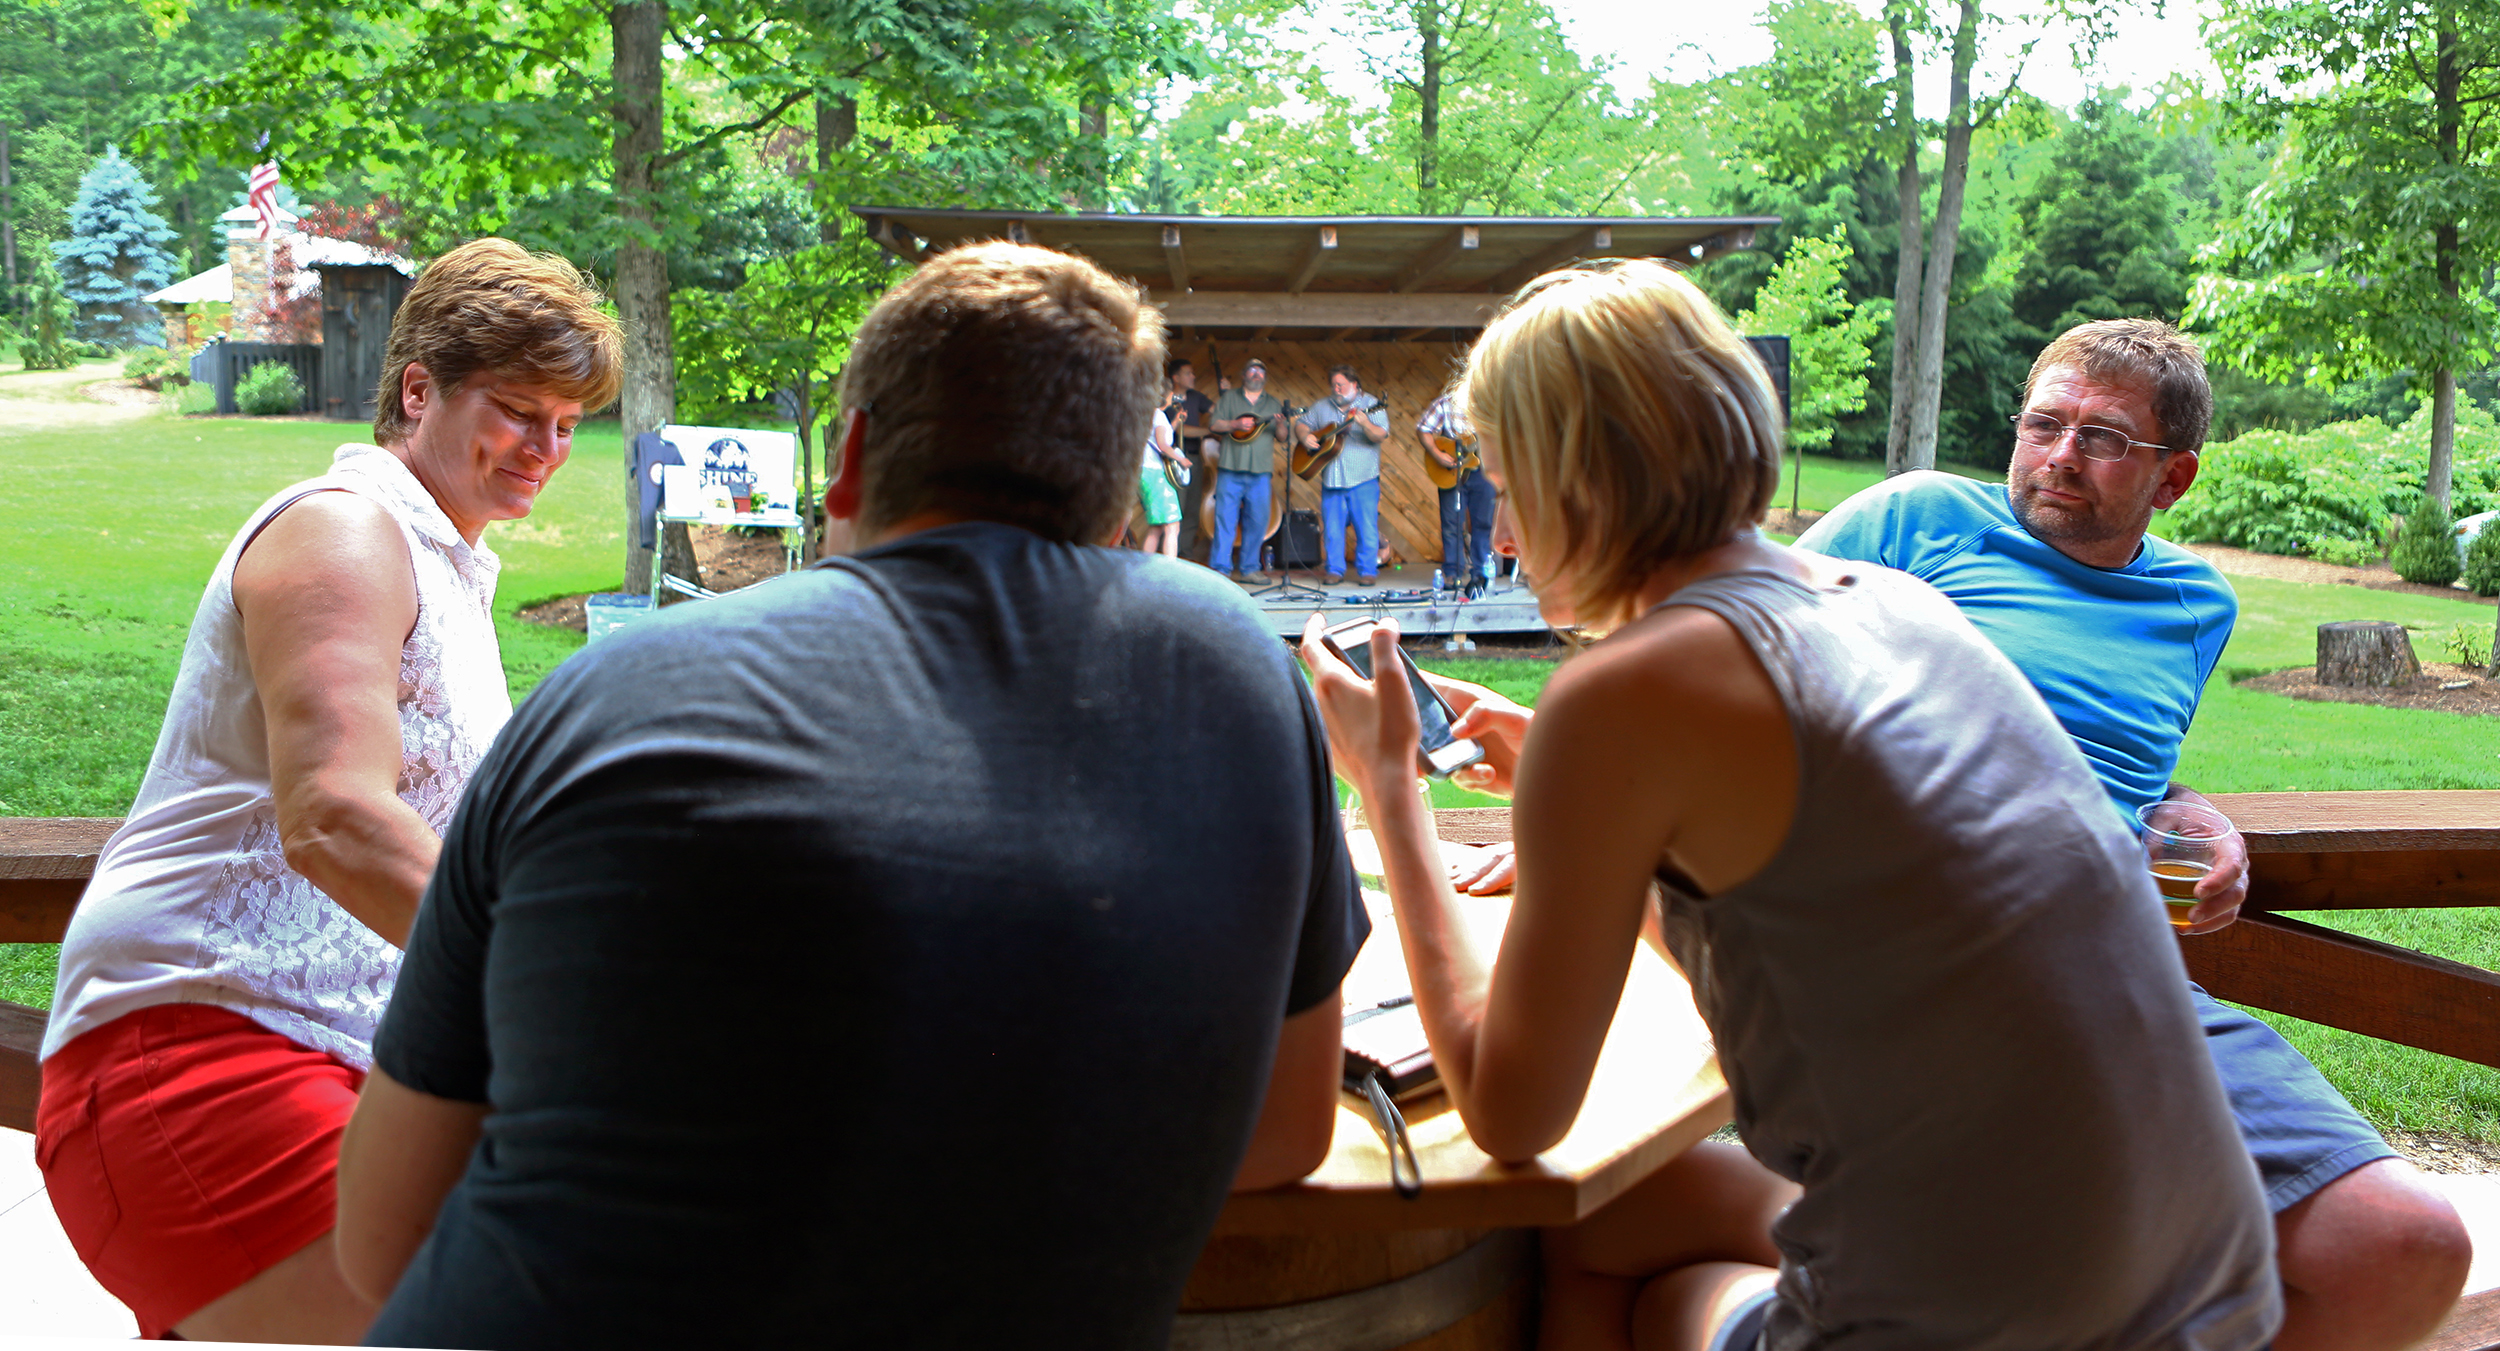 Matt Carney (far right) sits with his family as the Tussey Mountain Moonshiners perform during the Father's Day barbecue at Seven Mountains Wine Cellars on Sunday, June 19, 2016.